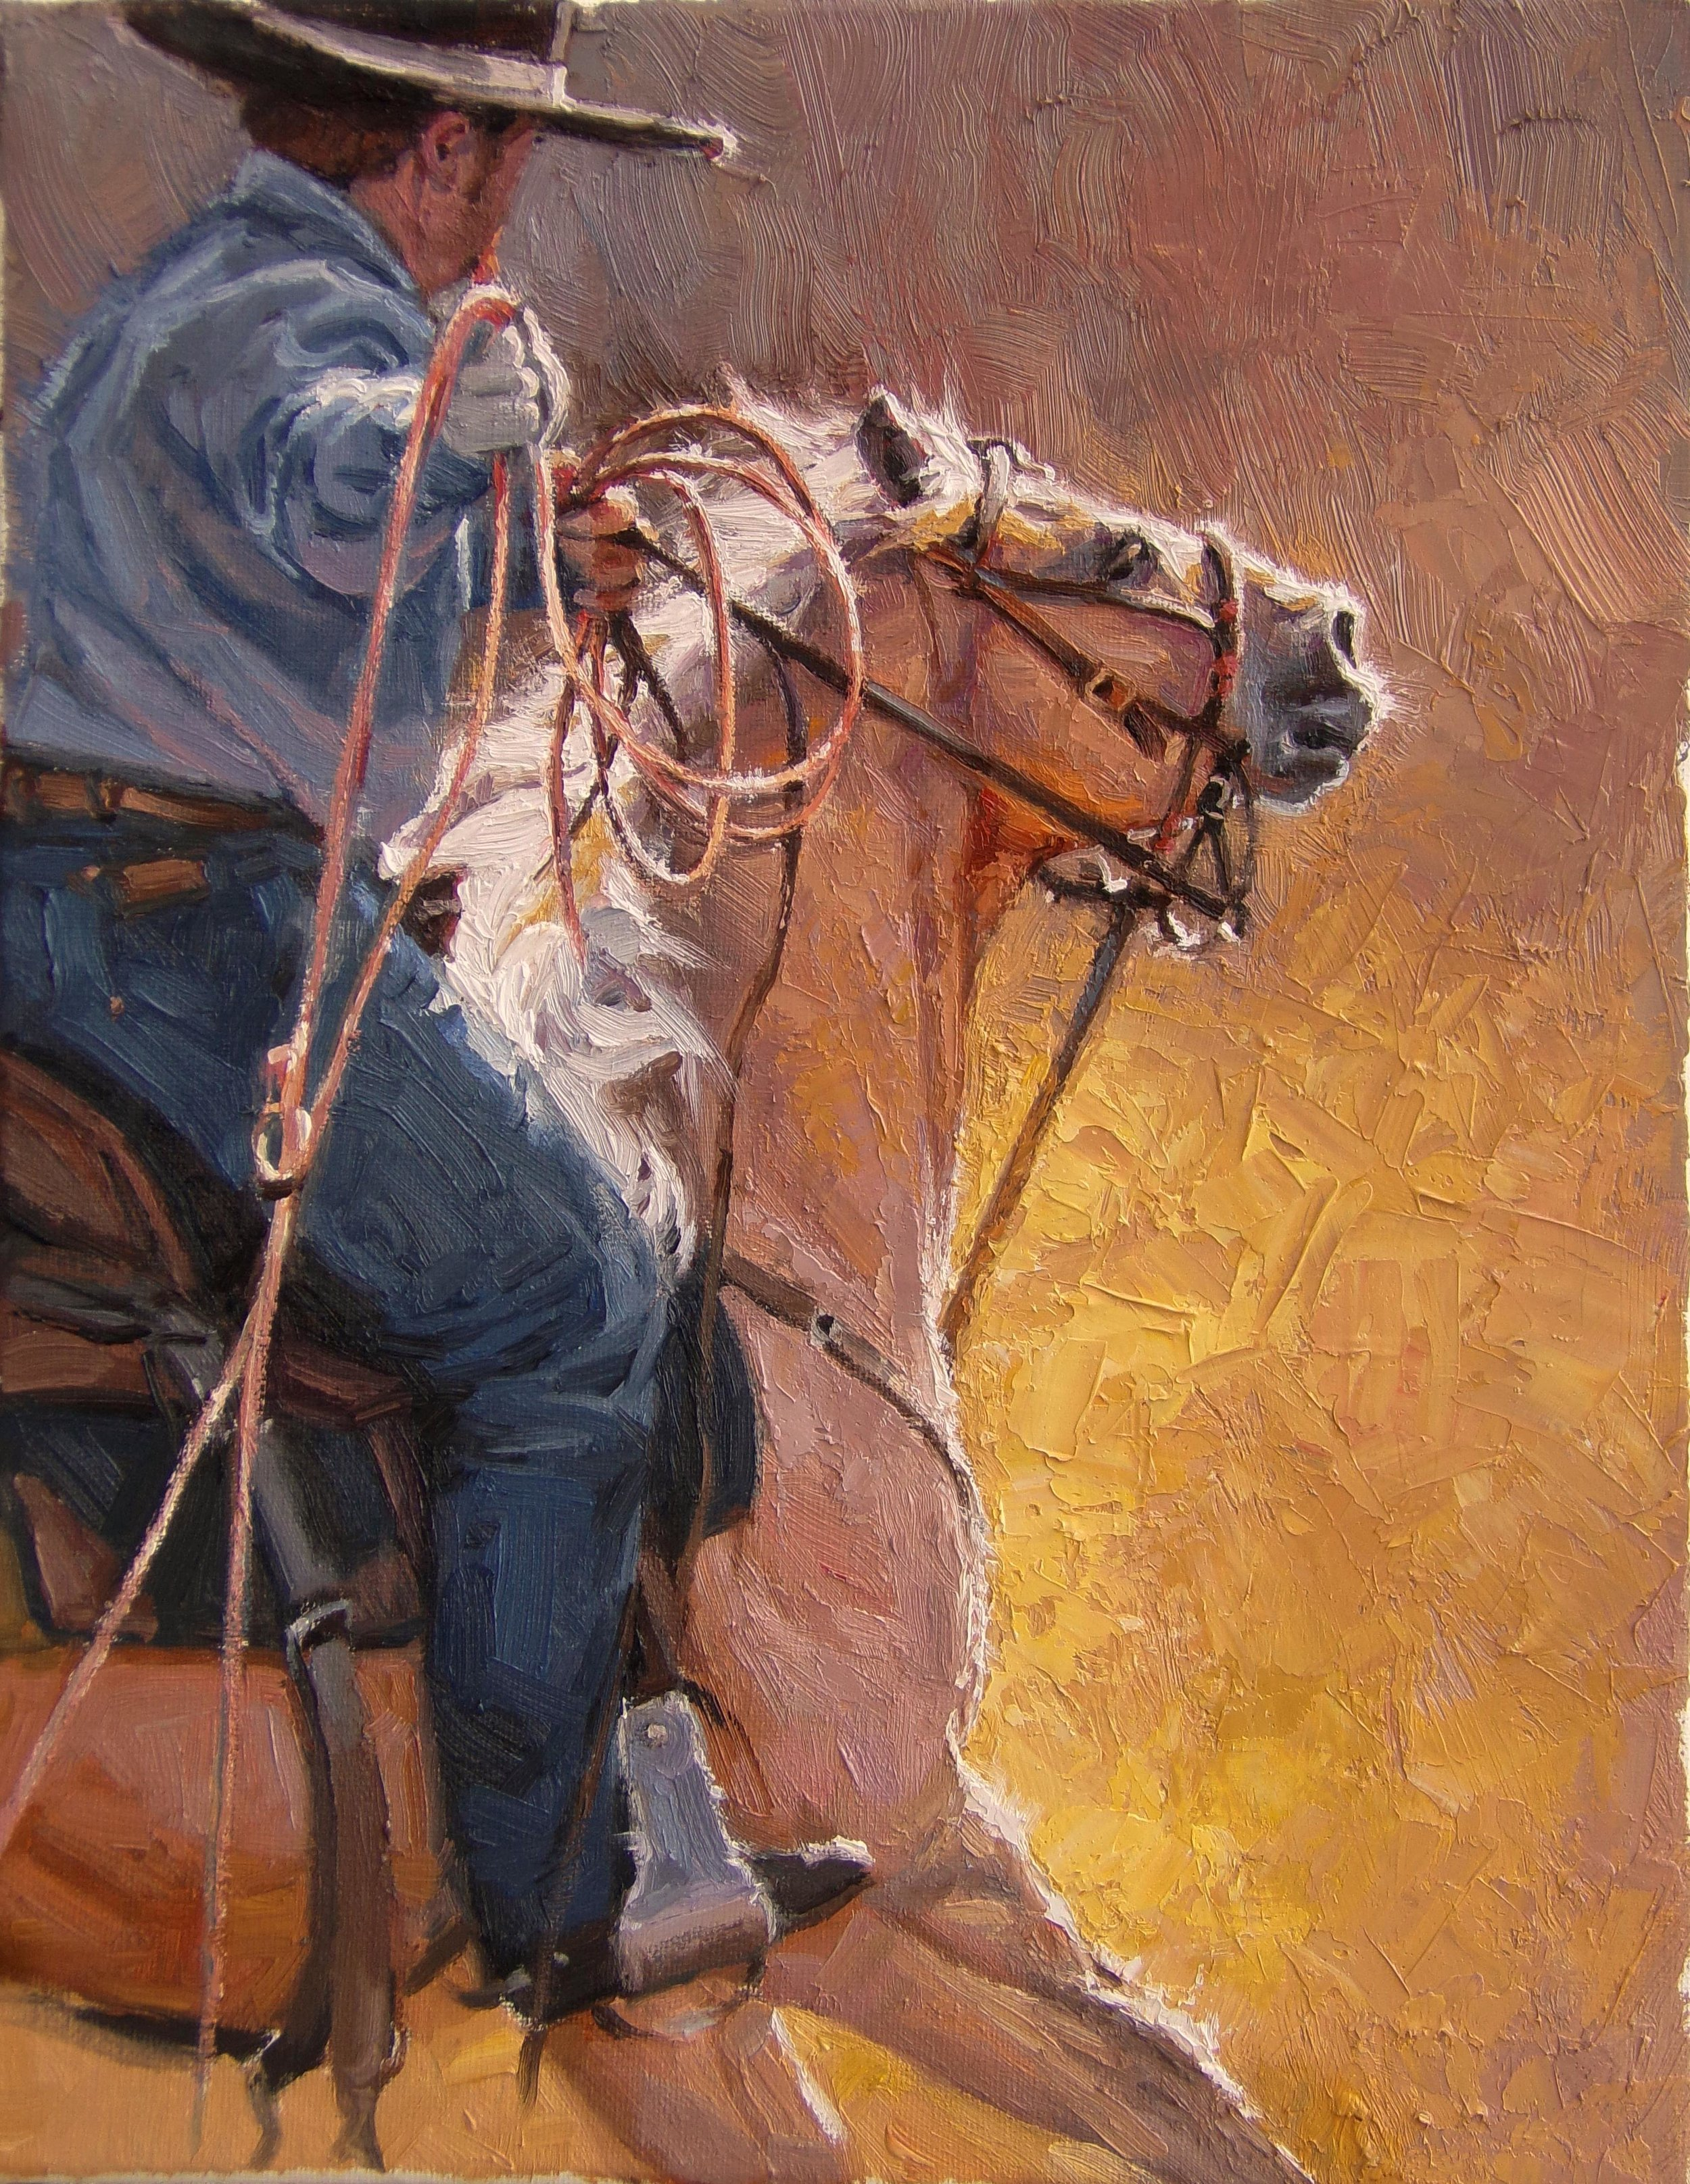 """""""Waiting his turn"""" - 11x14"""" oil on canvas"""